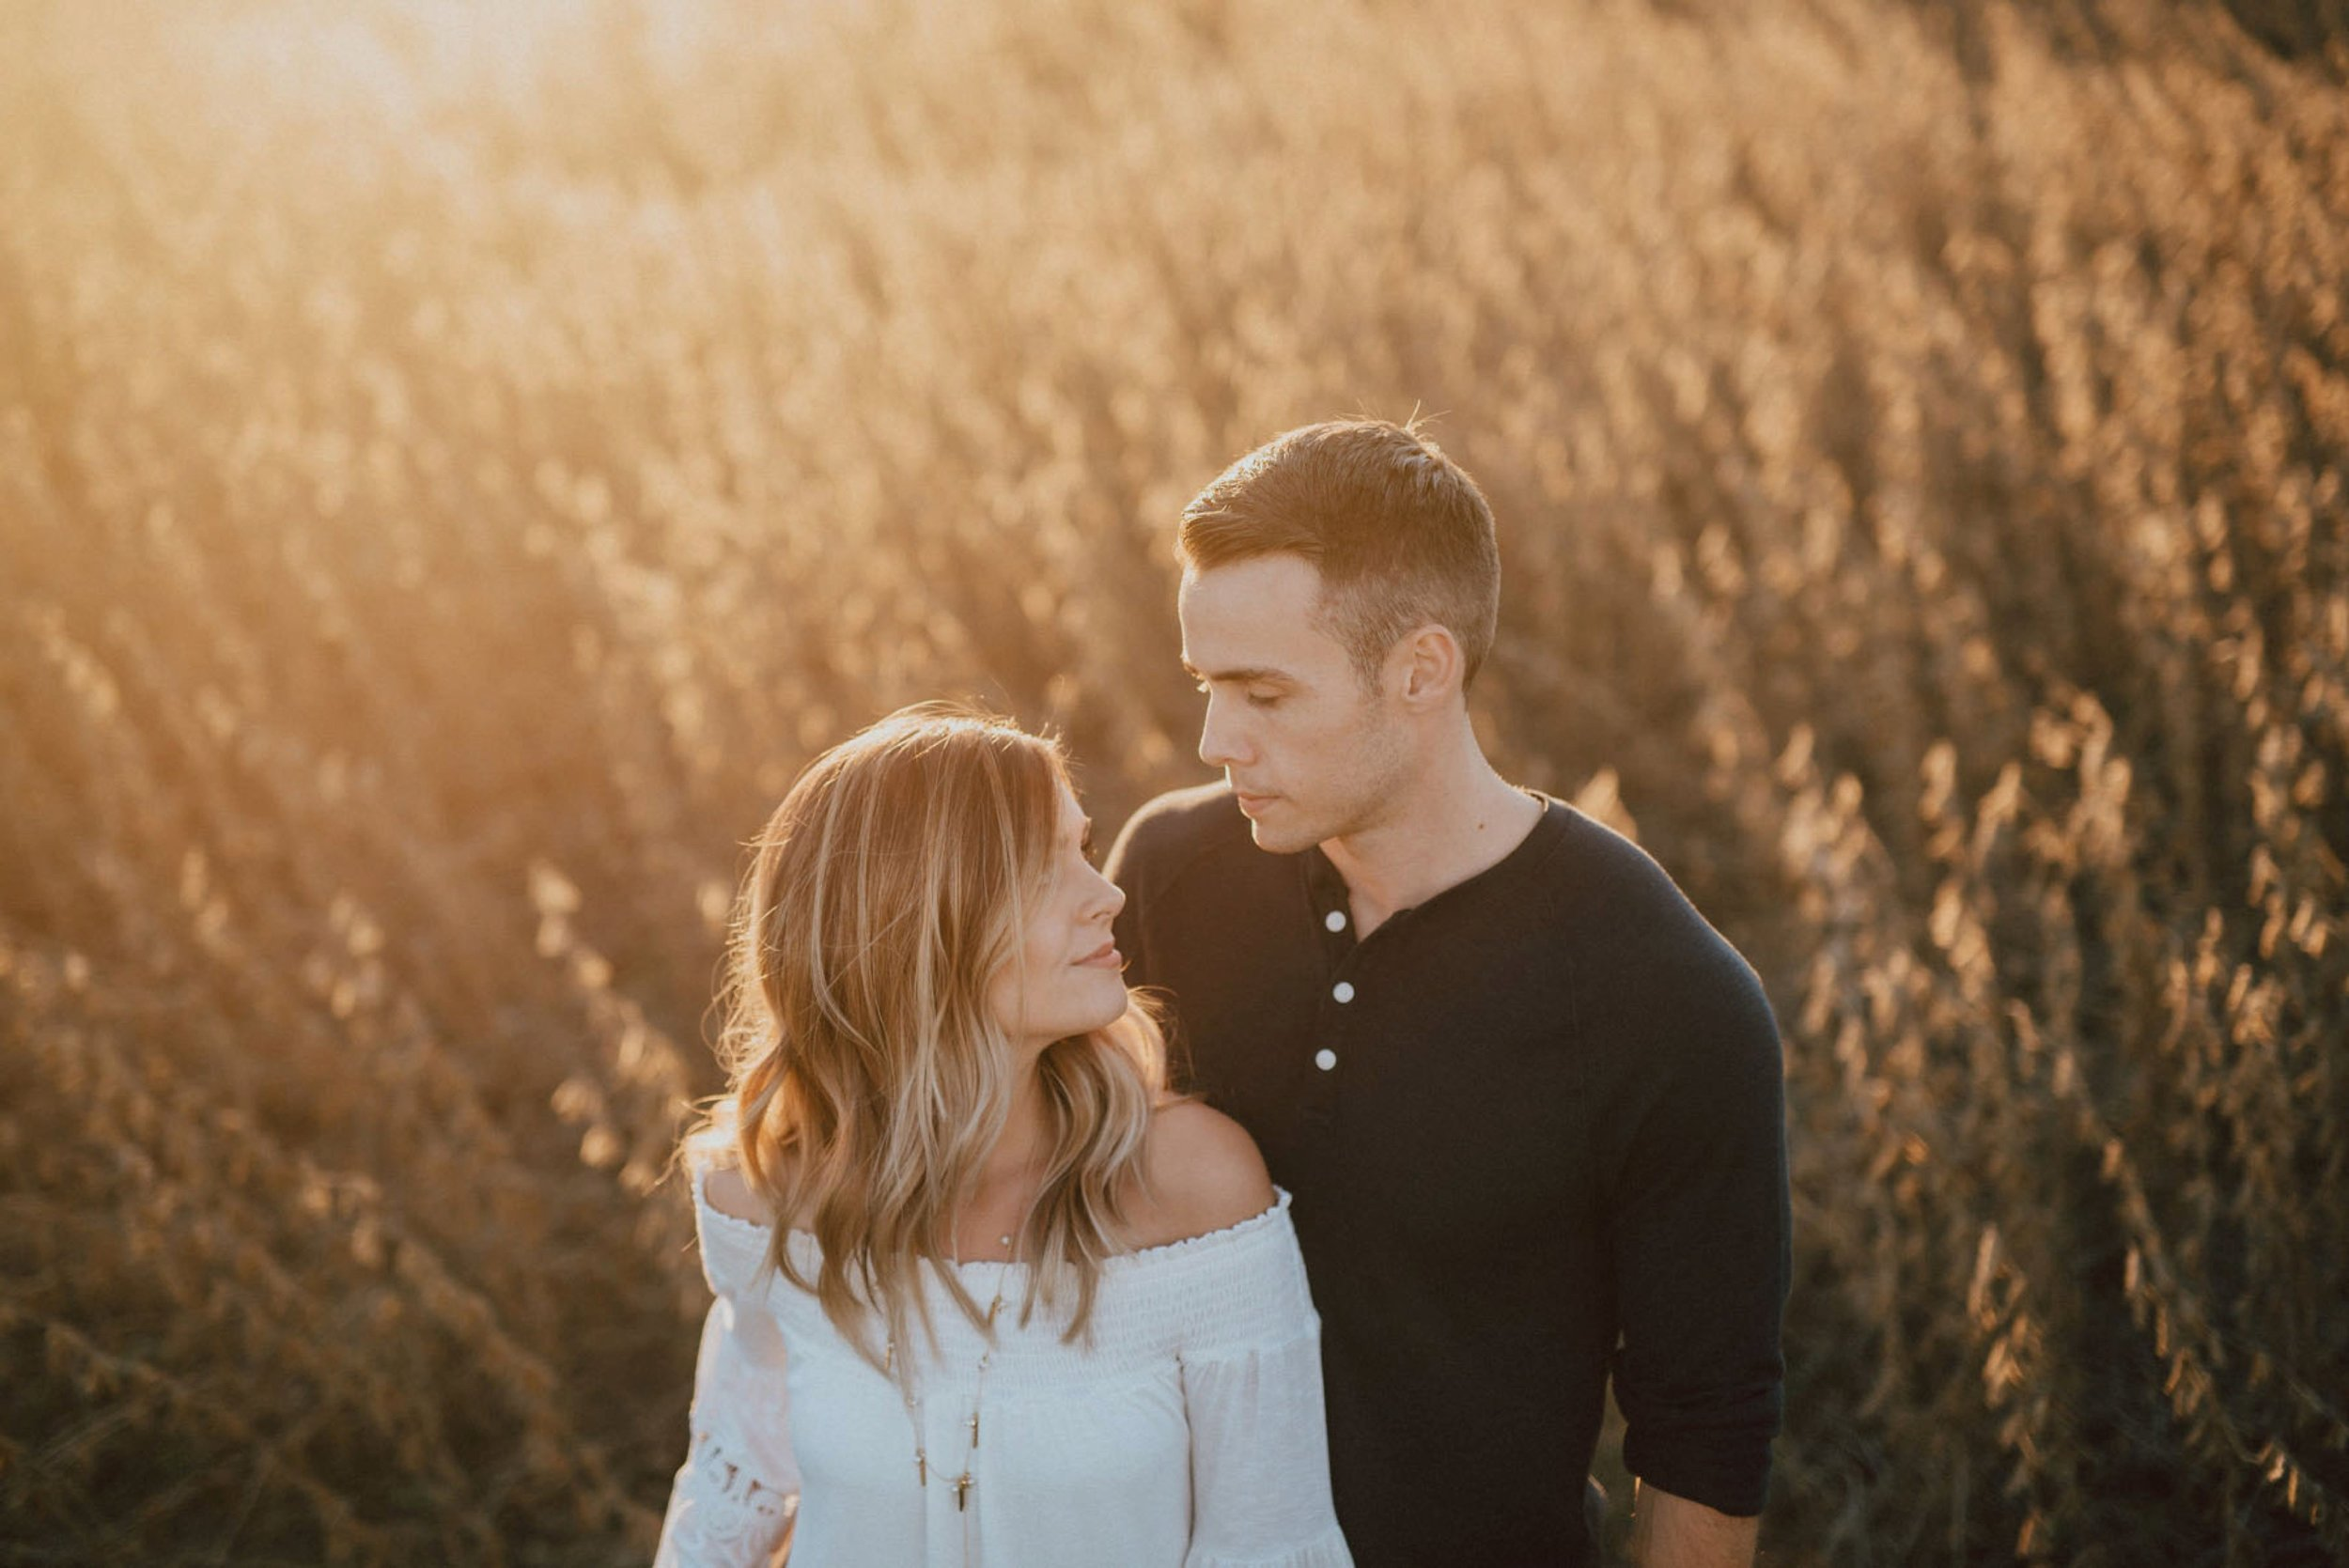 elkton-maryland-engagement-session-49.jpg